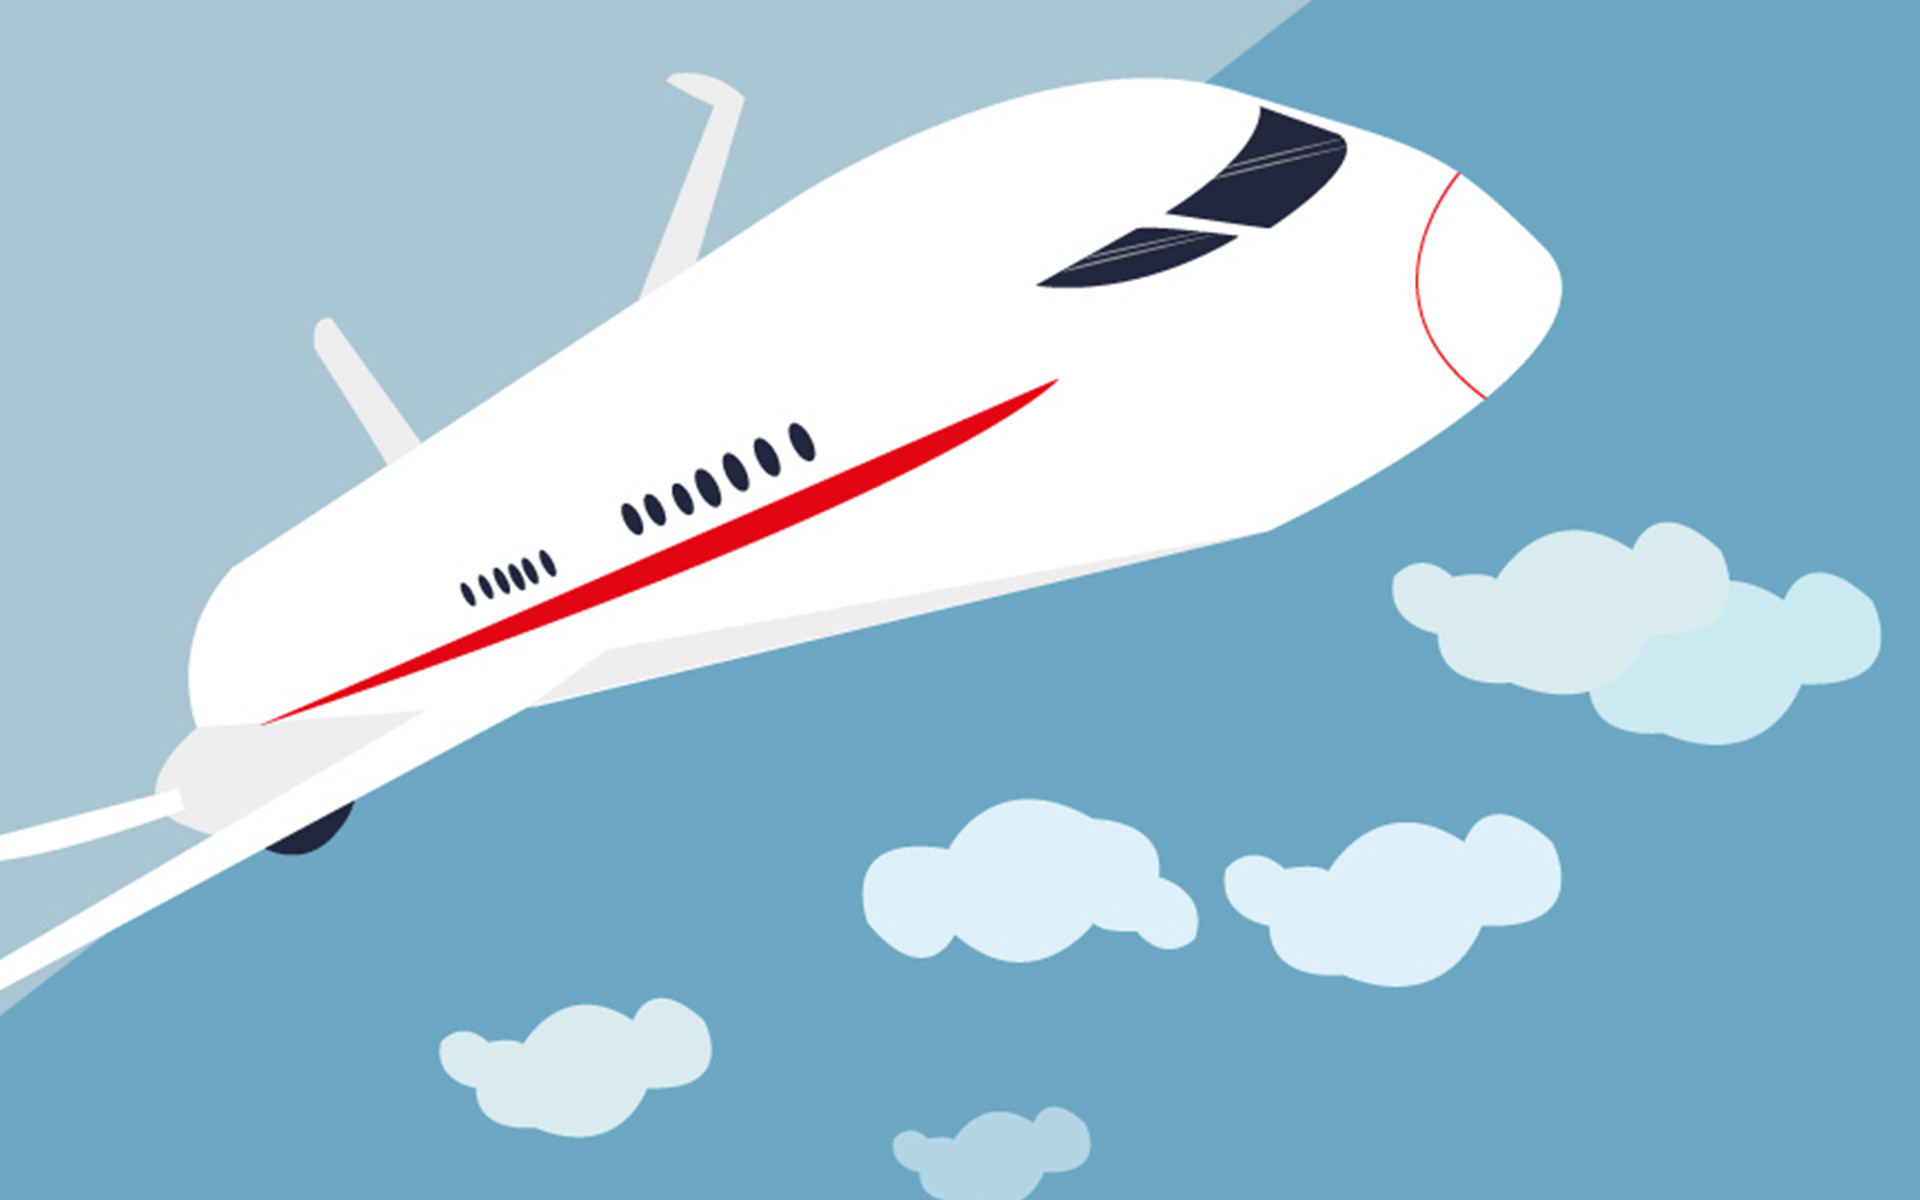 Plane illustration